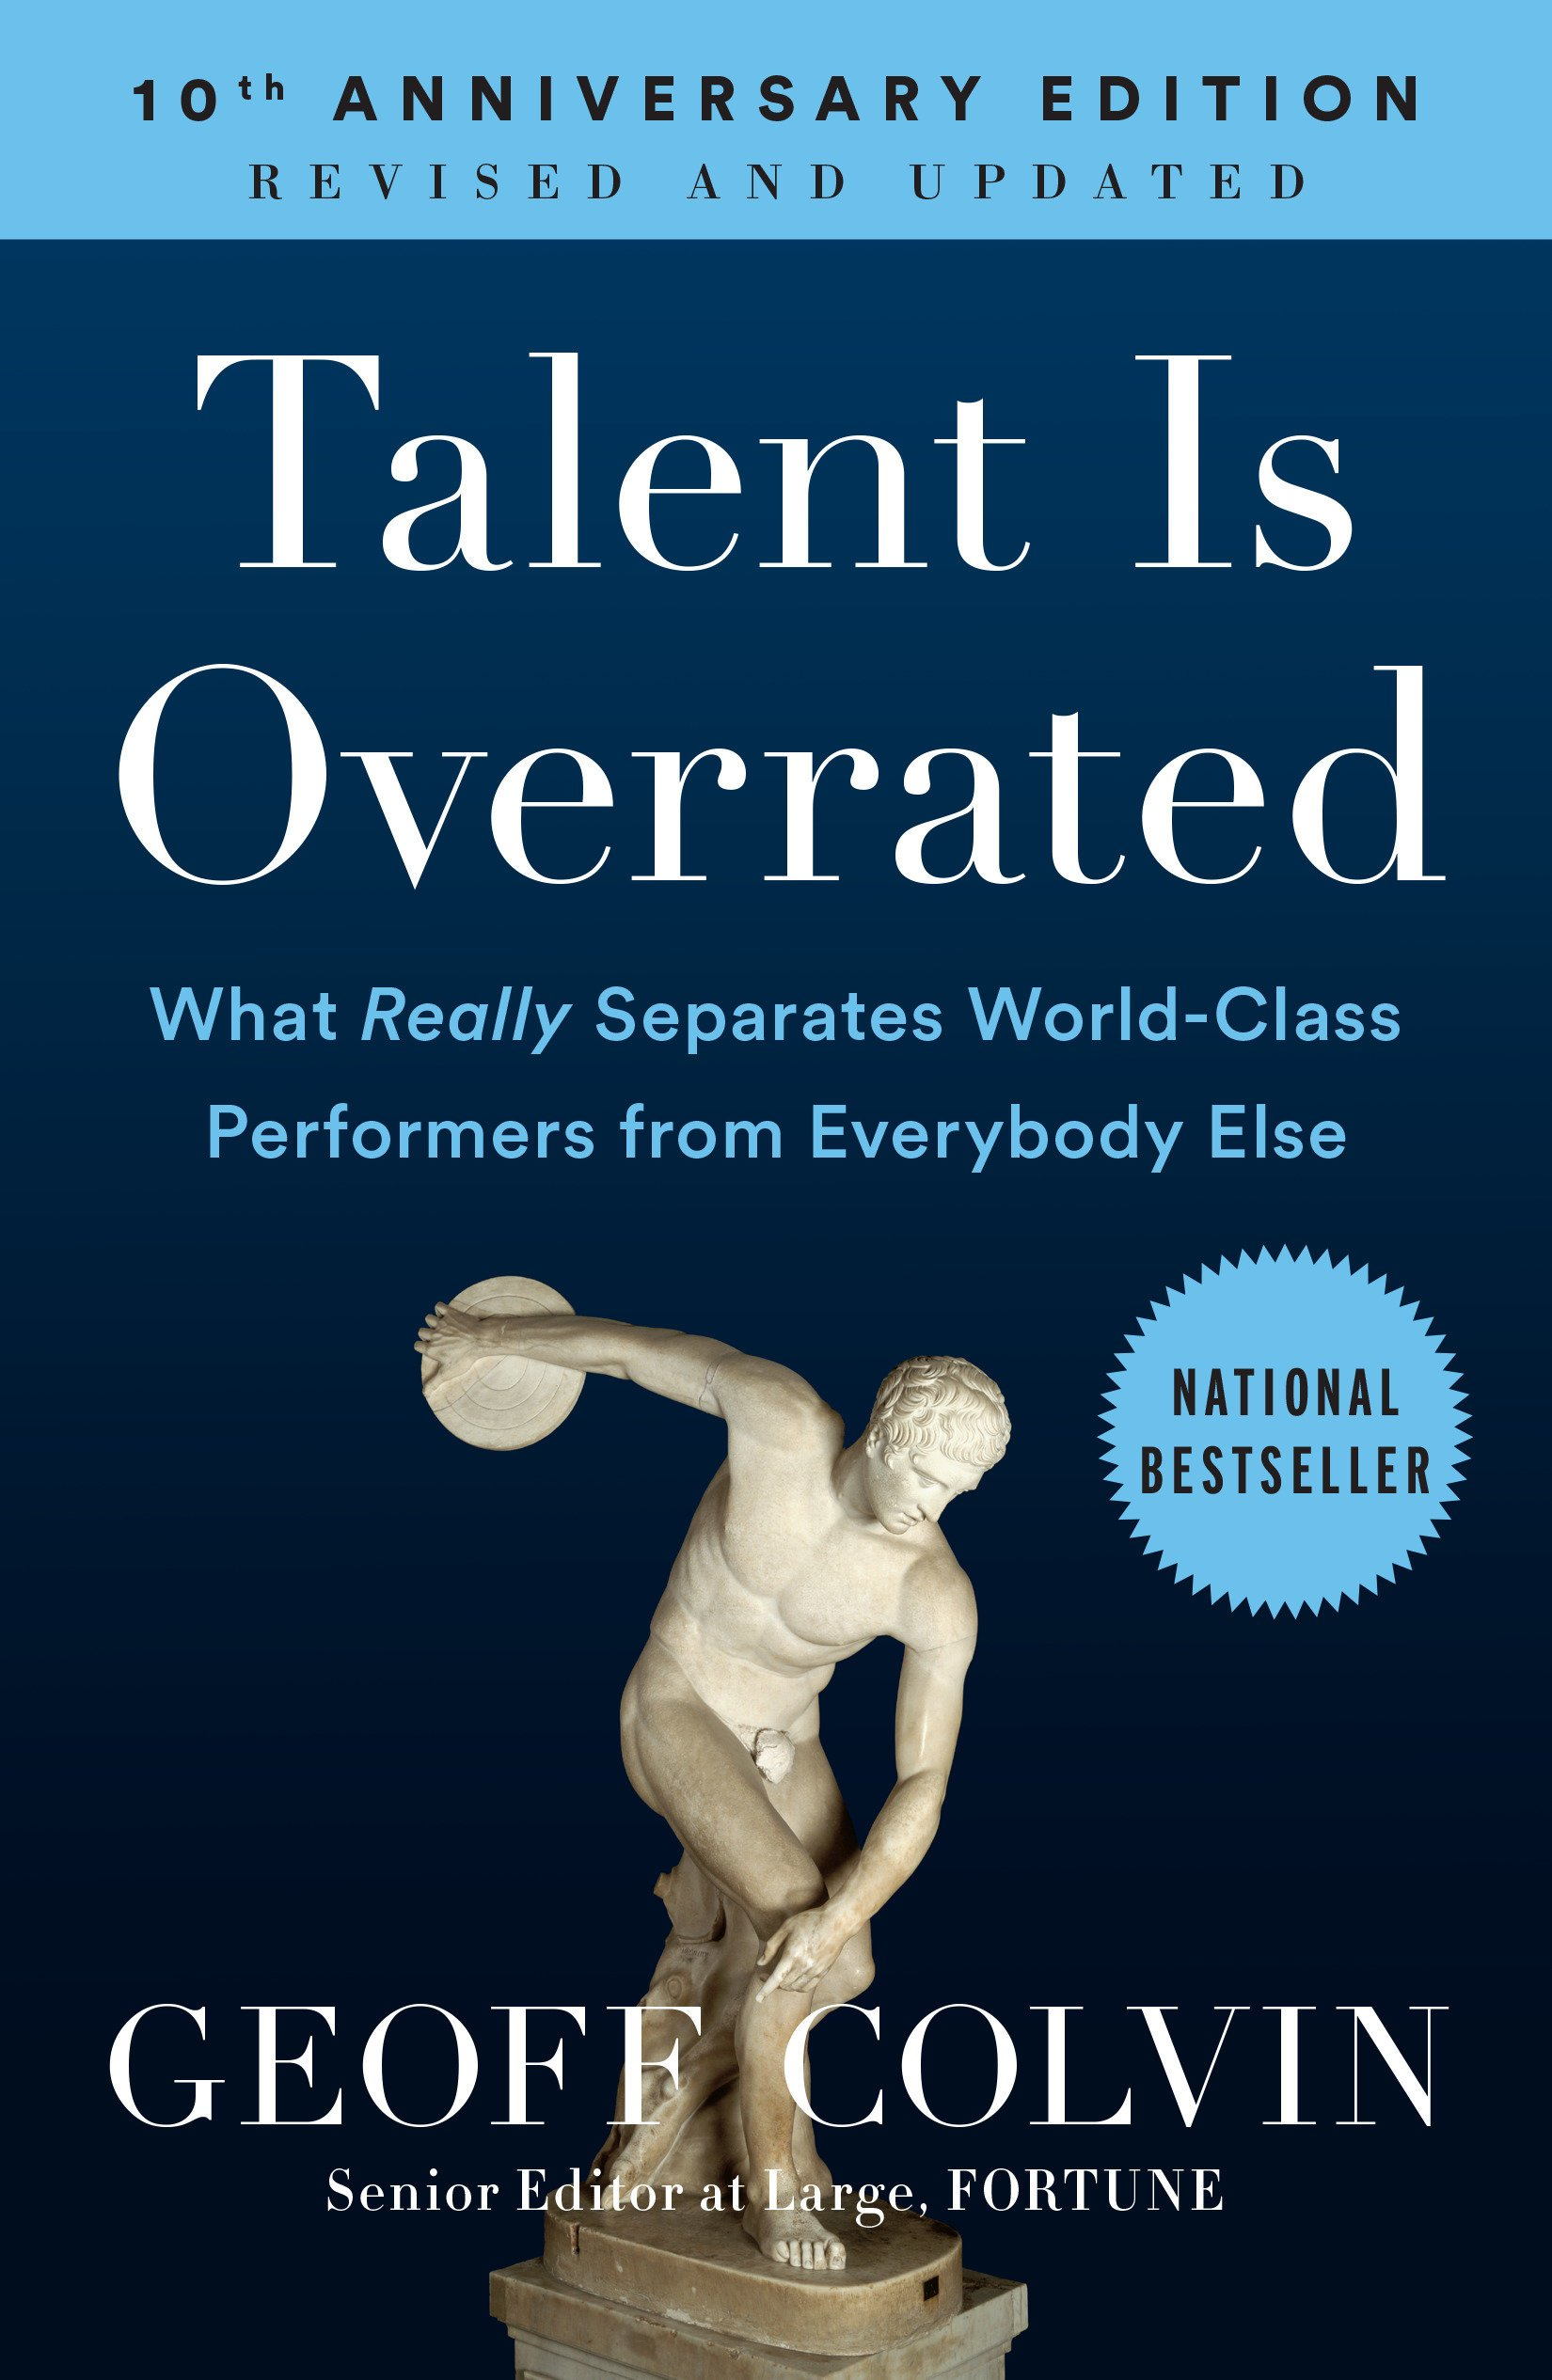 Talent Is Overrated: What Really Separates World-Class Performers from Everybody Else by Geoff Colvin.